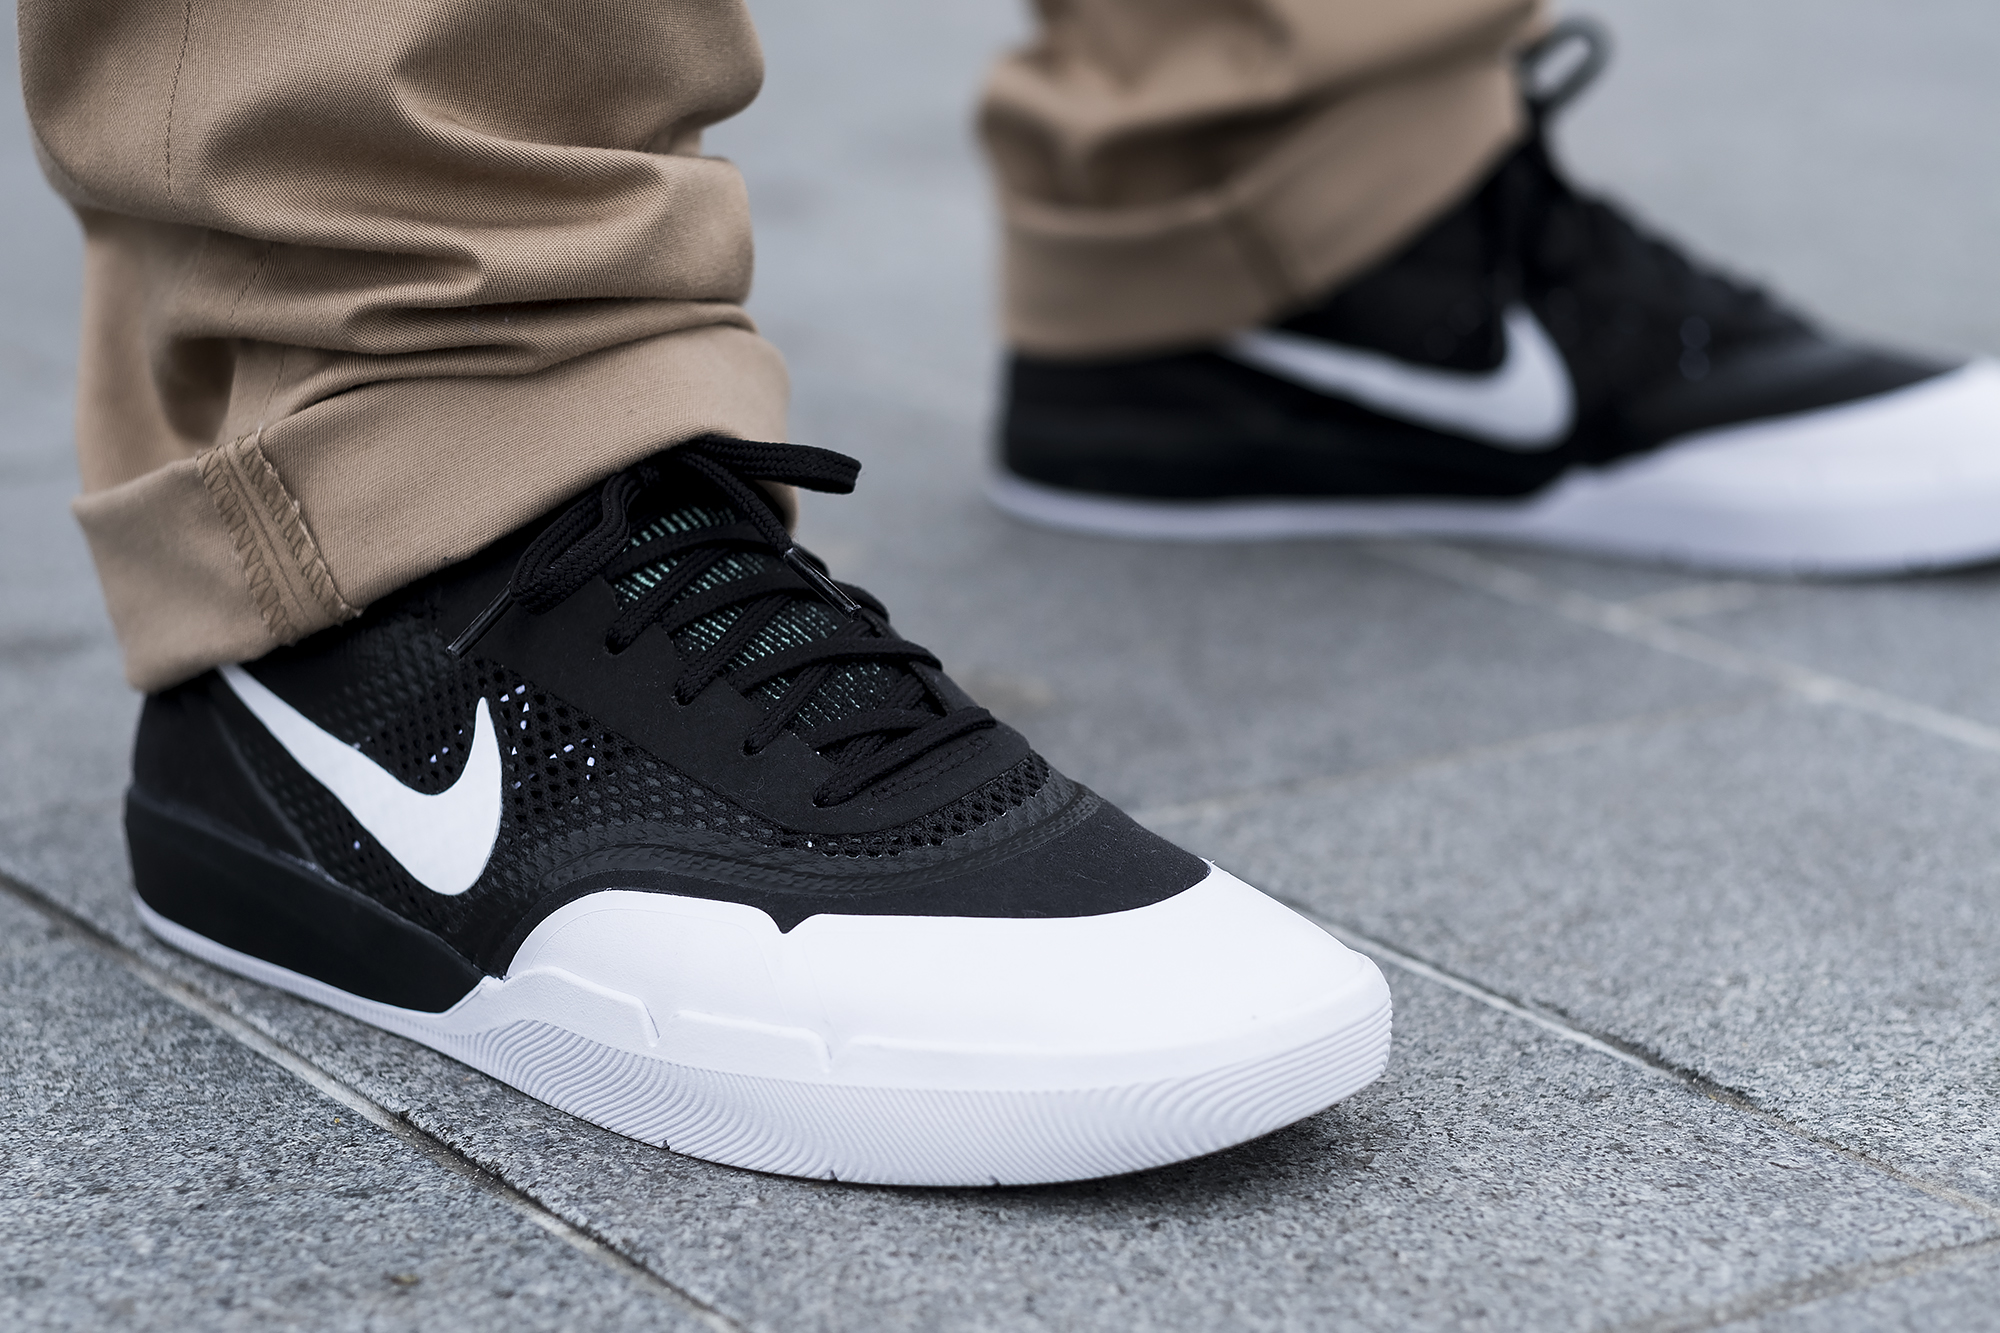 los angeles fef49 8dcdb Shoe Weartest Nike SB Eric Koston 3 Hyperfeel XT